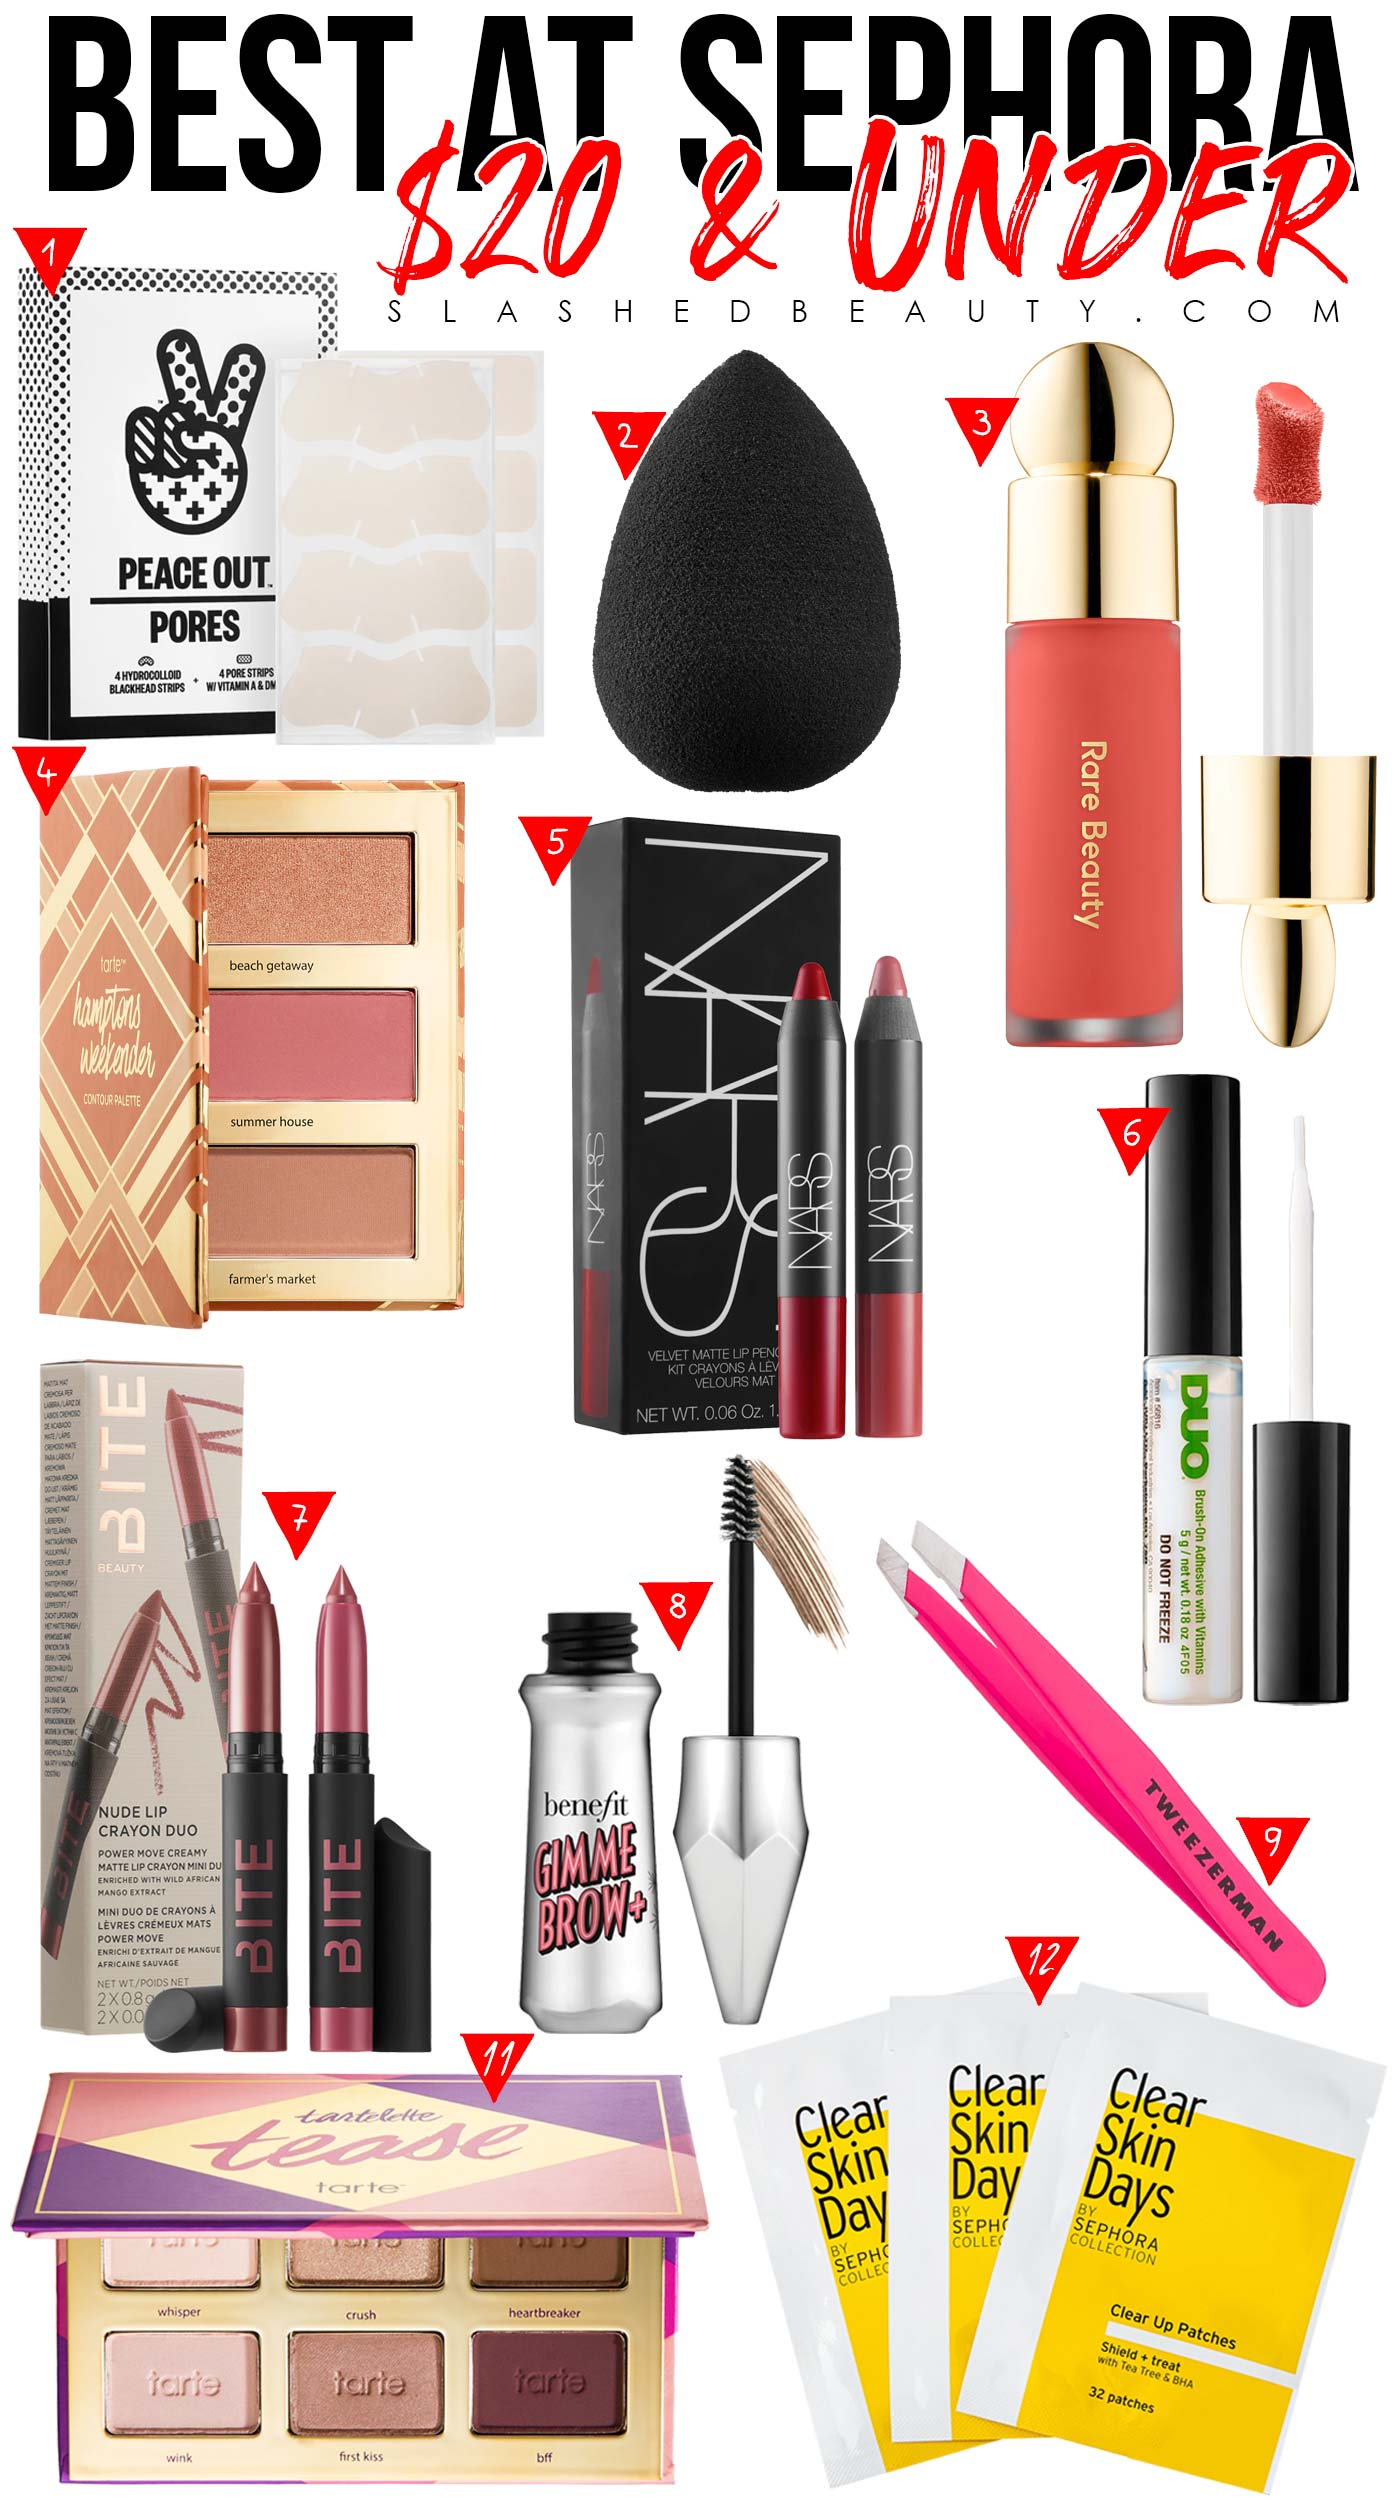 What to Buy at Sephora with $20 or Less | The Best Products at Sephora for $20 | Slashed Beauty